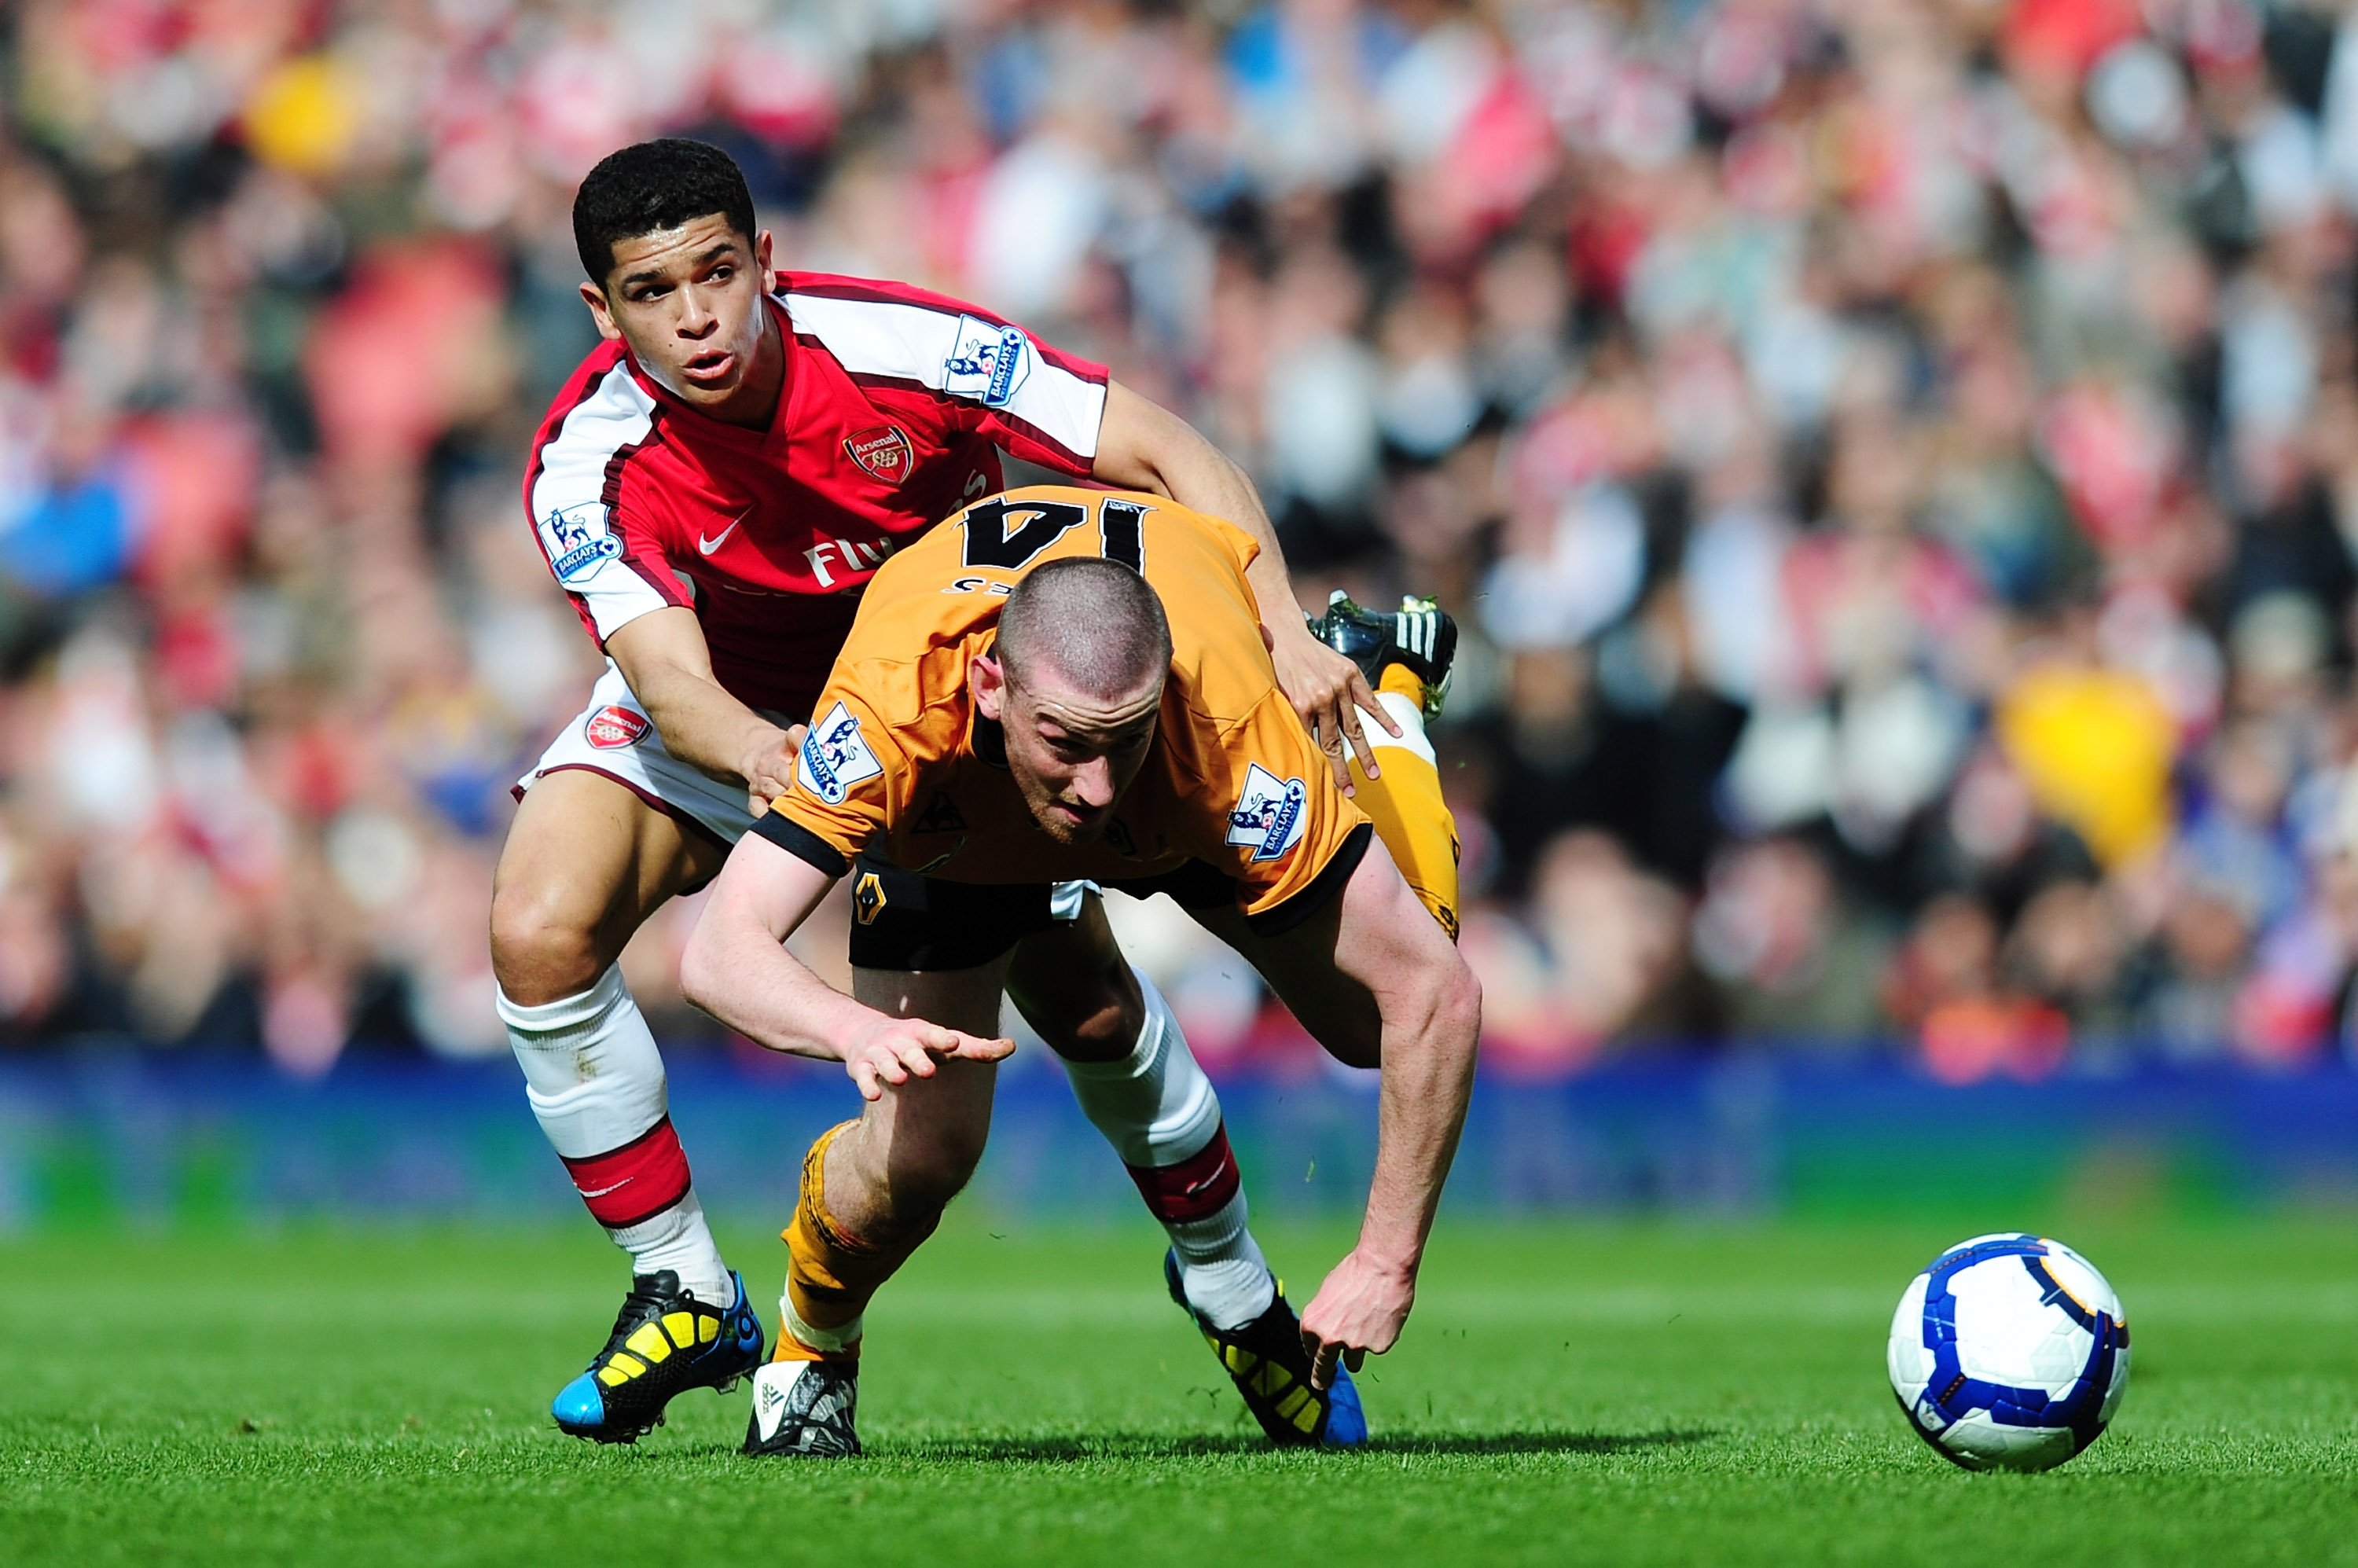 LONDON, ENGLAND - APRIL 03:  Denilson of Arsenal is challenged by David Jones of Wolverhampton Wanderers during the Barclays Premier League match between Arsenal and Wolverhampton Wanderers at the Emirates Stadium on April 3, 2010 in London, England.  (Ph